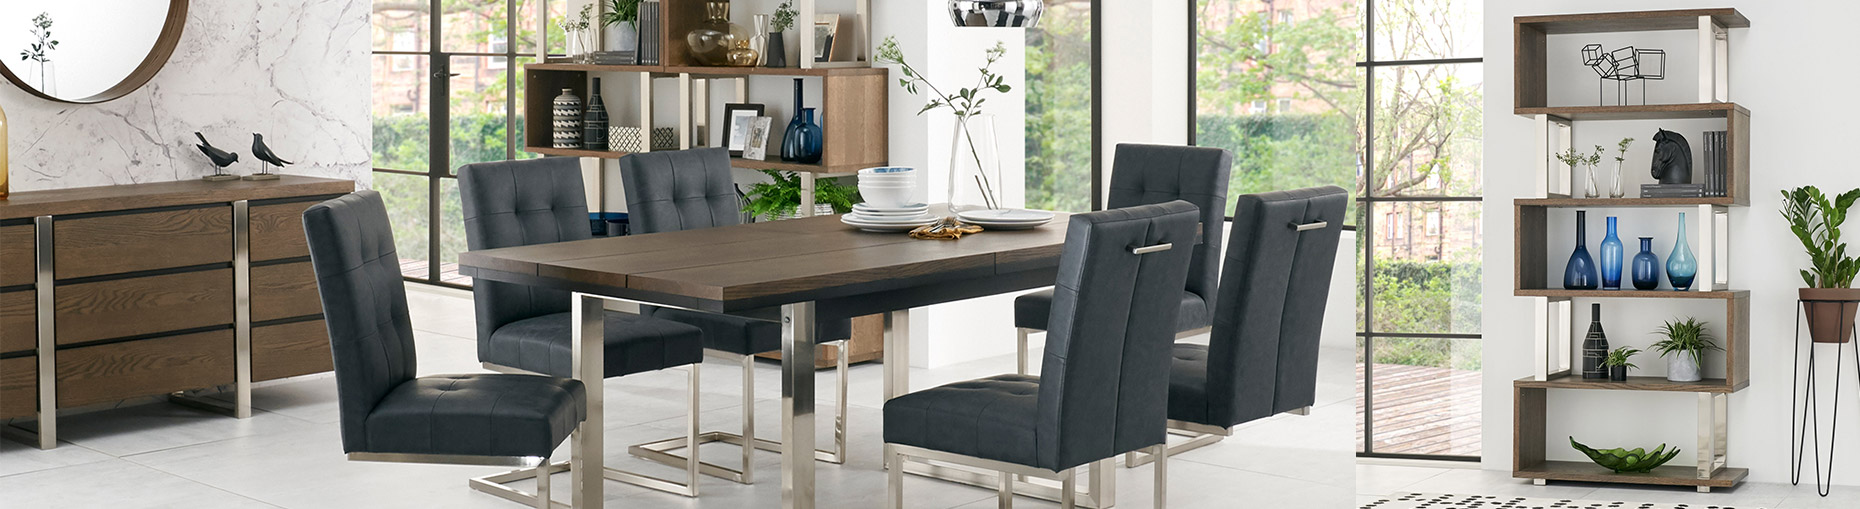 Tivoli dining collection at Forrest Furnishing